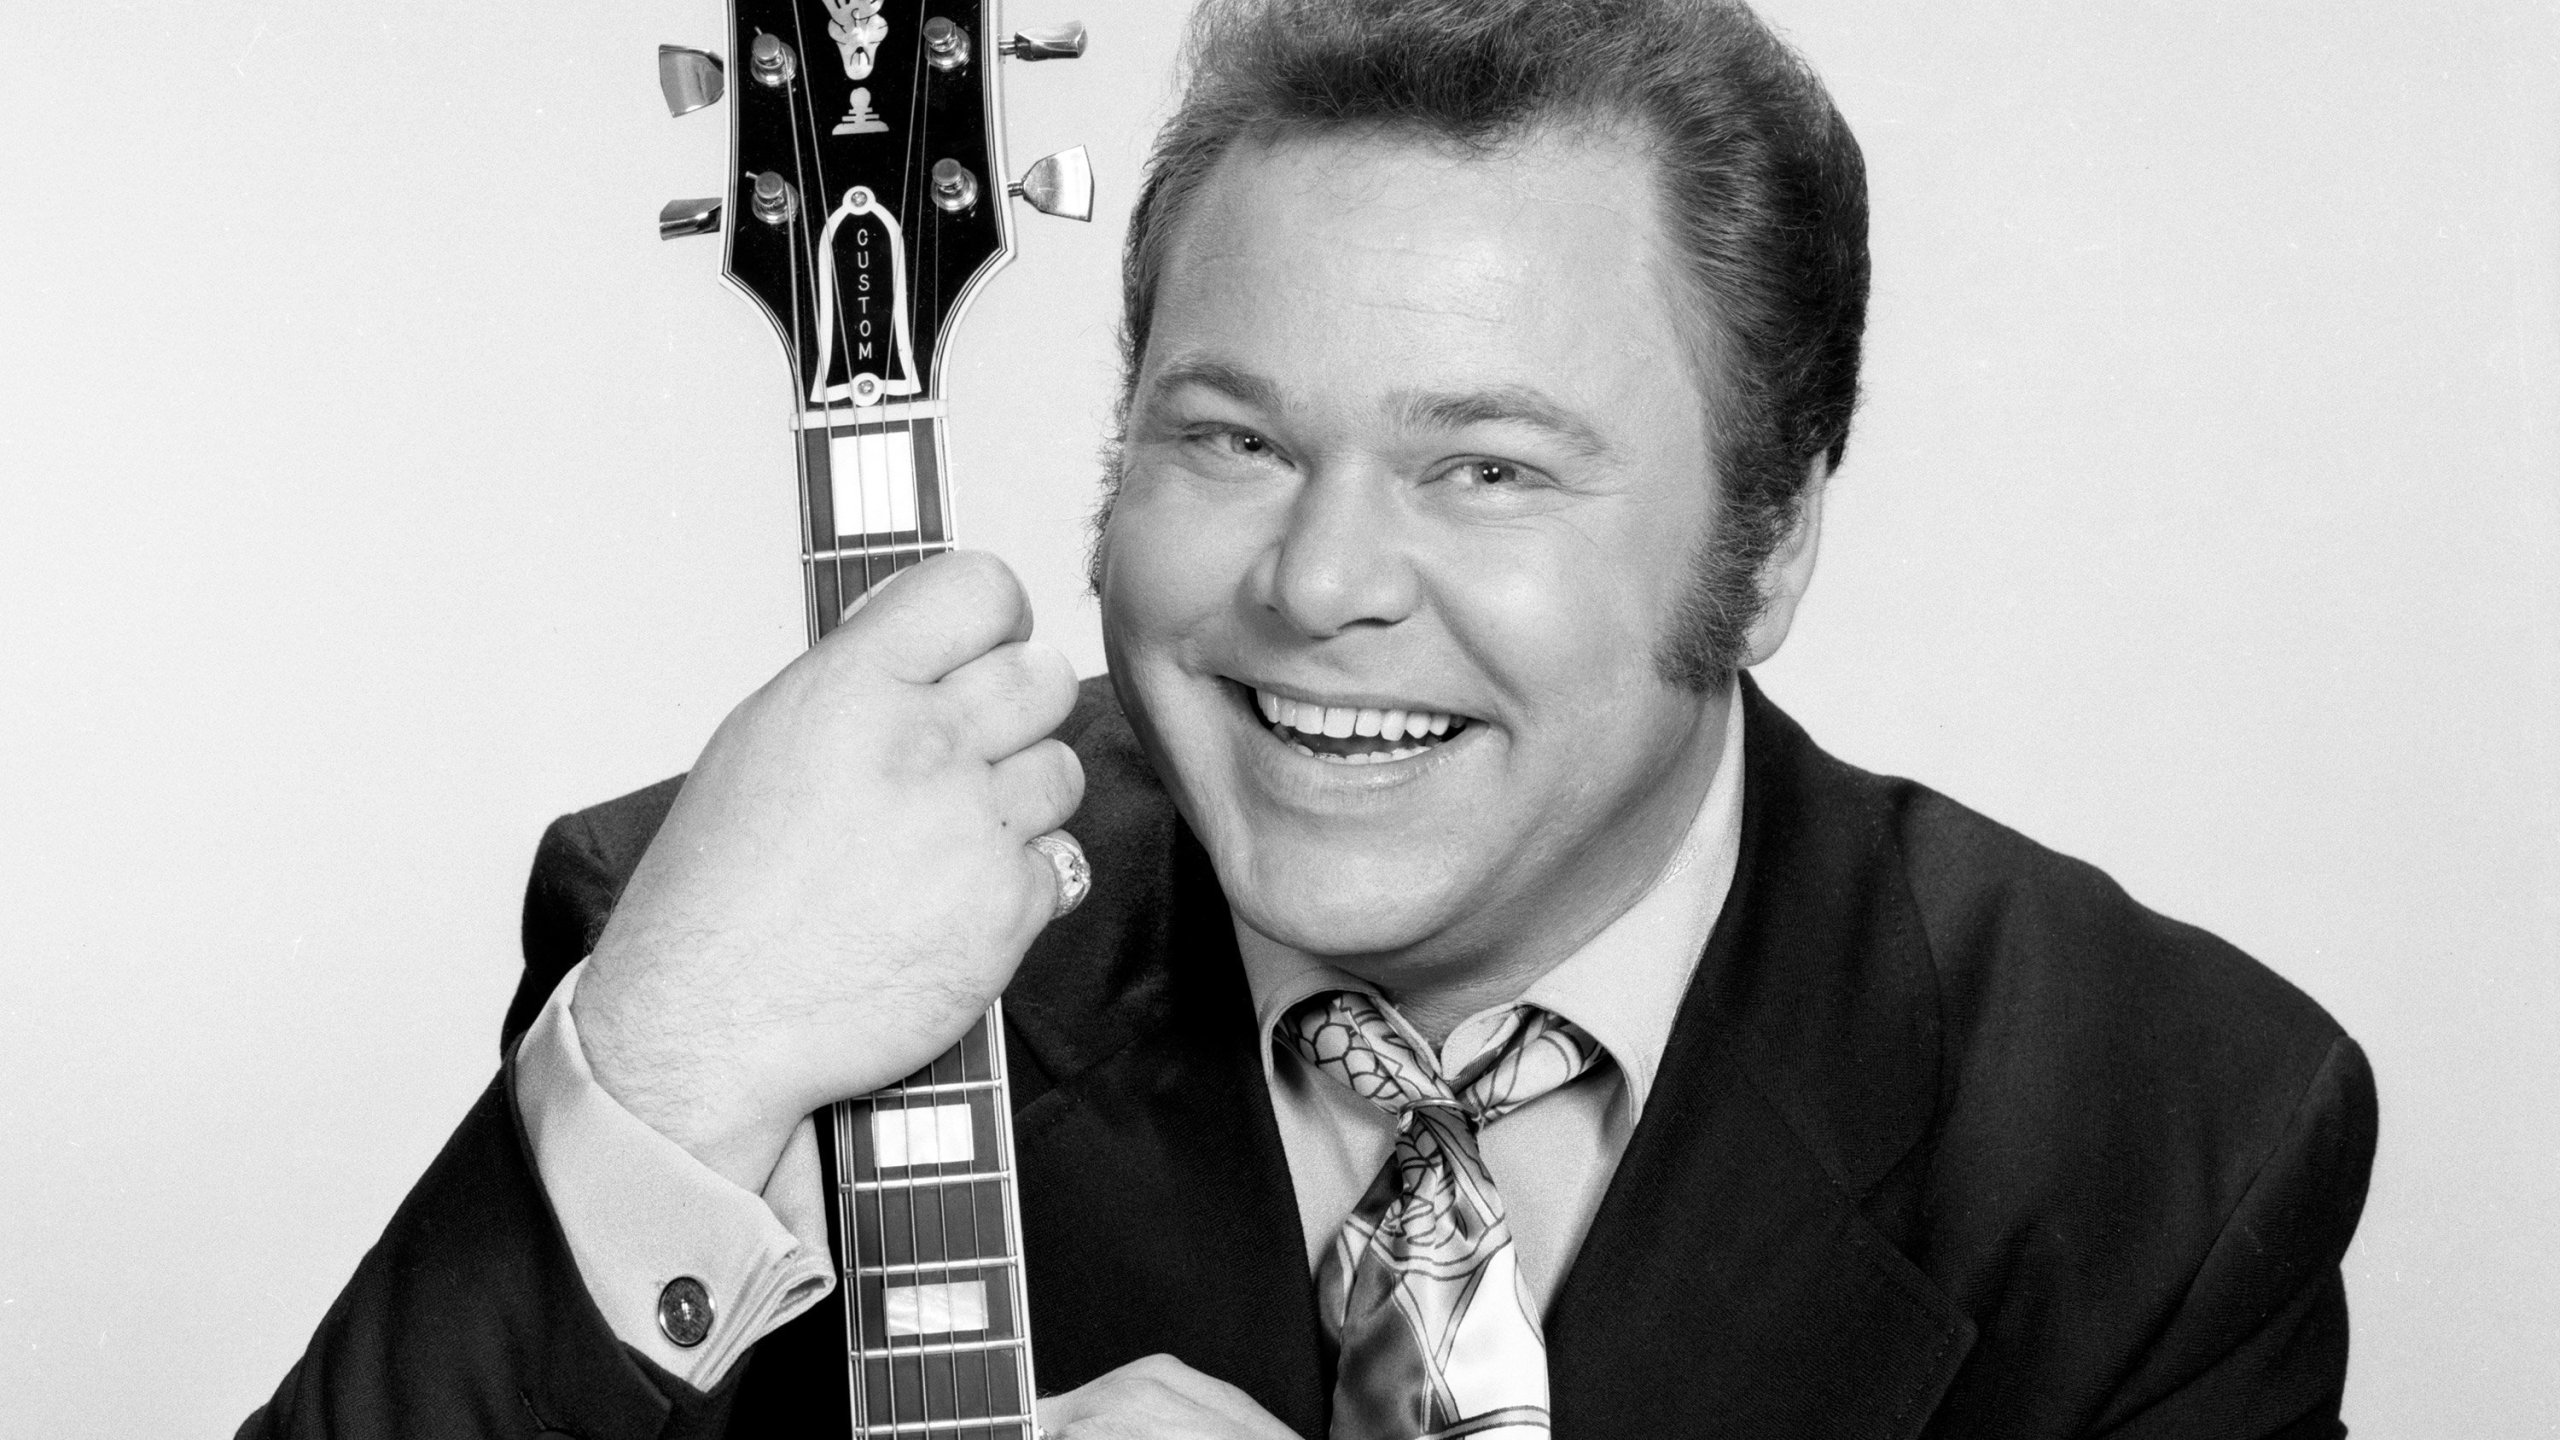 """Roy Clark, a country music star and former host of the long-running TV series """"Hee Haw,"""" died Thursday, his publicist told CNN. (Credit: CBS via Getty Images)"""